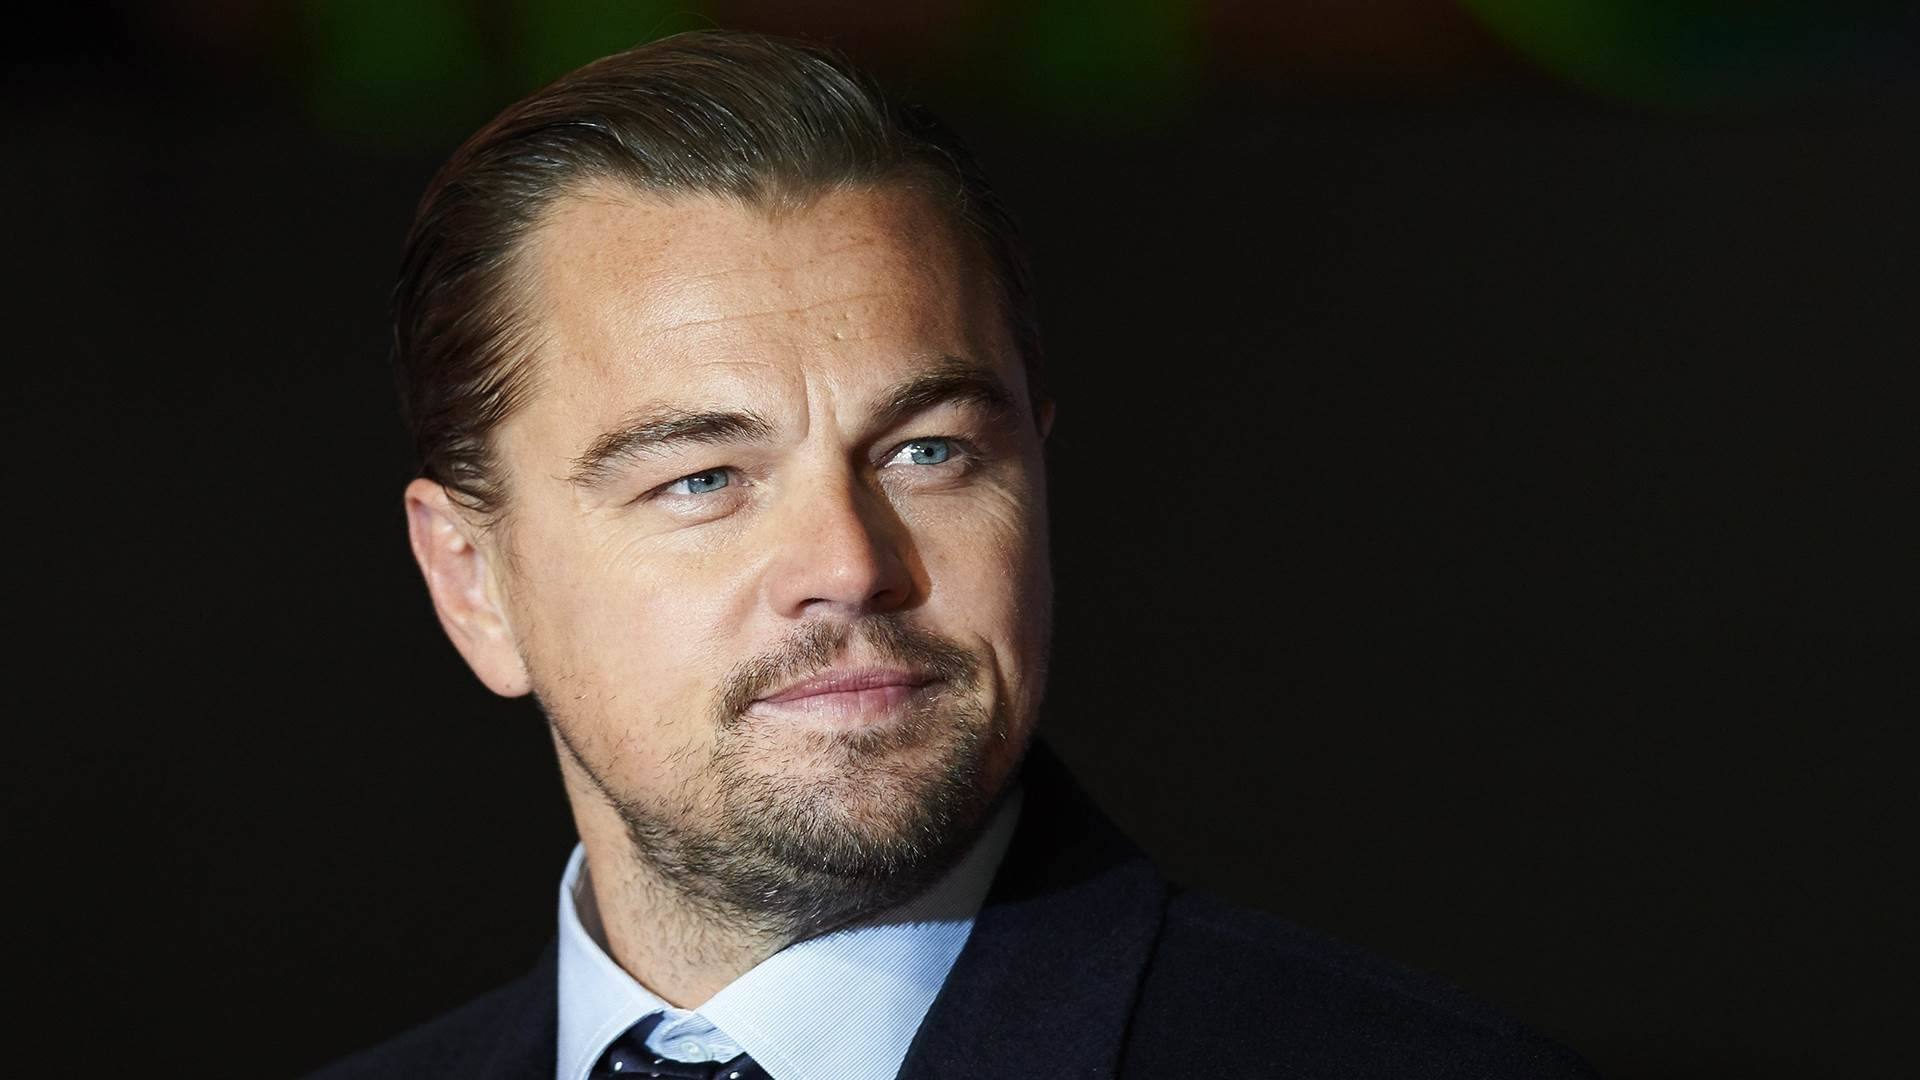 1920x1080 All posts tagged Leonardo Dicaprio